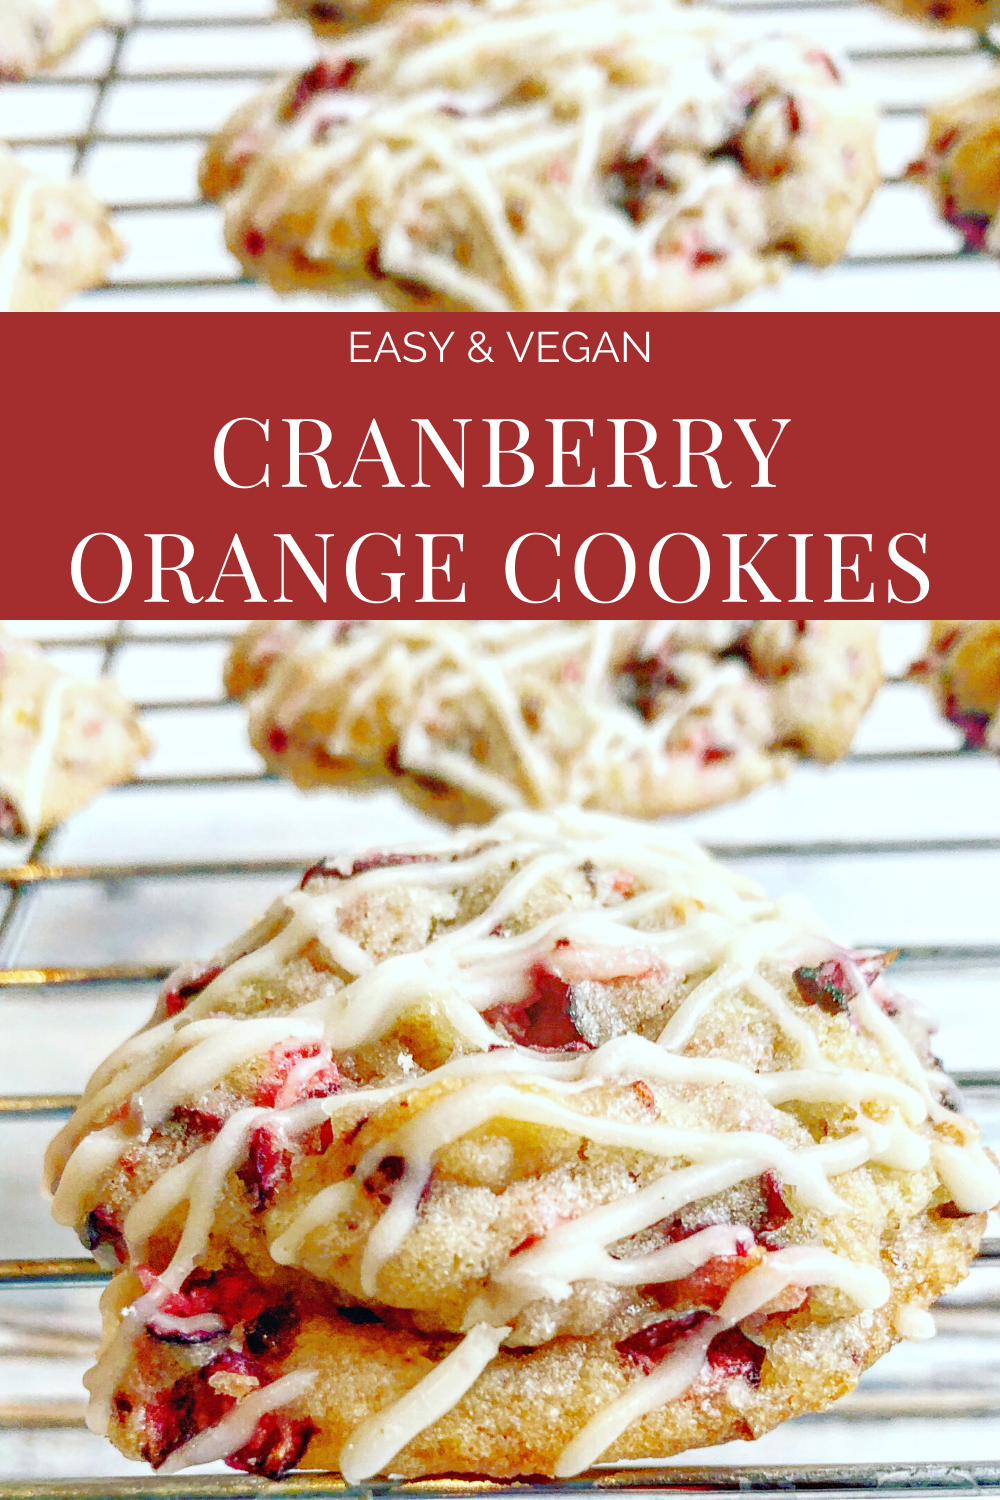 Vegan Cranberry Orange Cookies - Perfectly soft with a blend of citrus, sweet, and tart. These easy vegan cranberry orange cookies are a festive addition your holiday dessert table!  #cranberryorange #vegancookies #veganchristmascookies #cranberrycookies #thiswifecooksrecipes #cranberryorangecookieschristmas #cranberryorangecookiesrecipe #cranberryorangecookiessoft  via @thiswifecooks